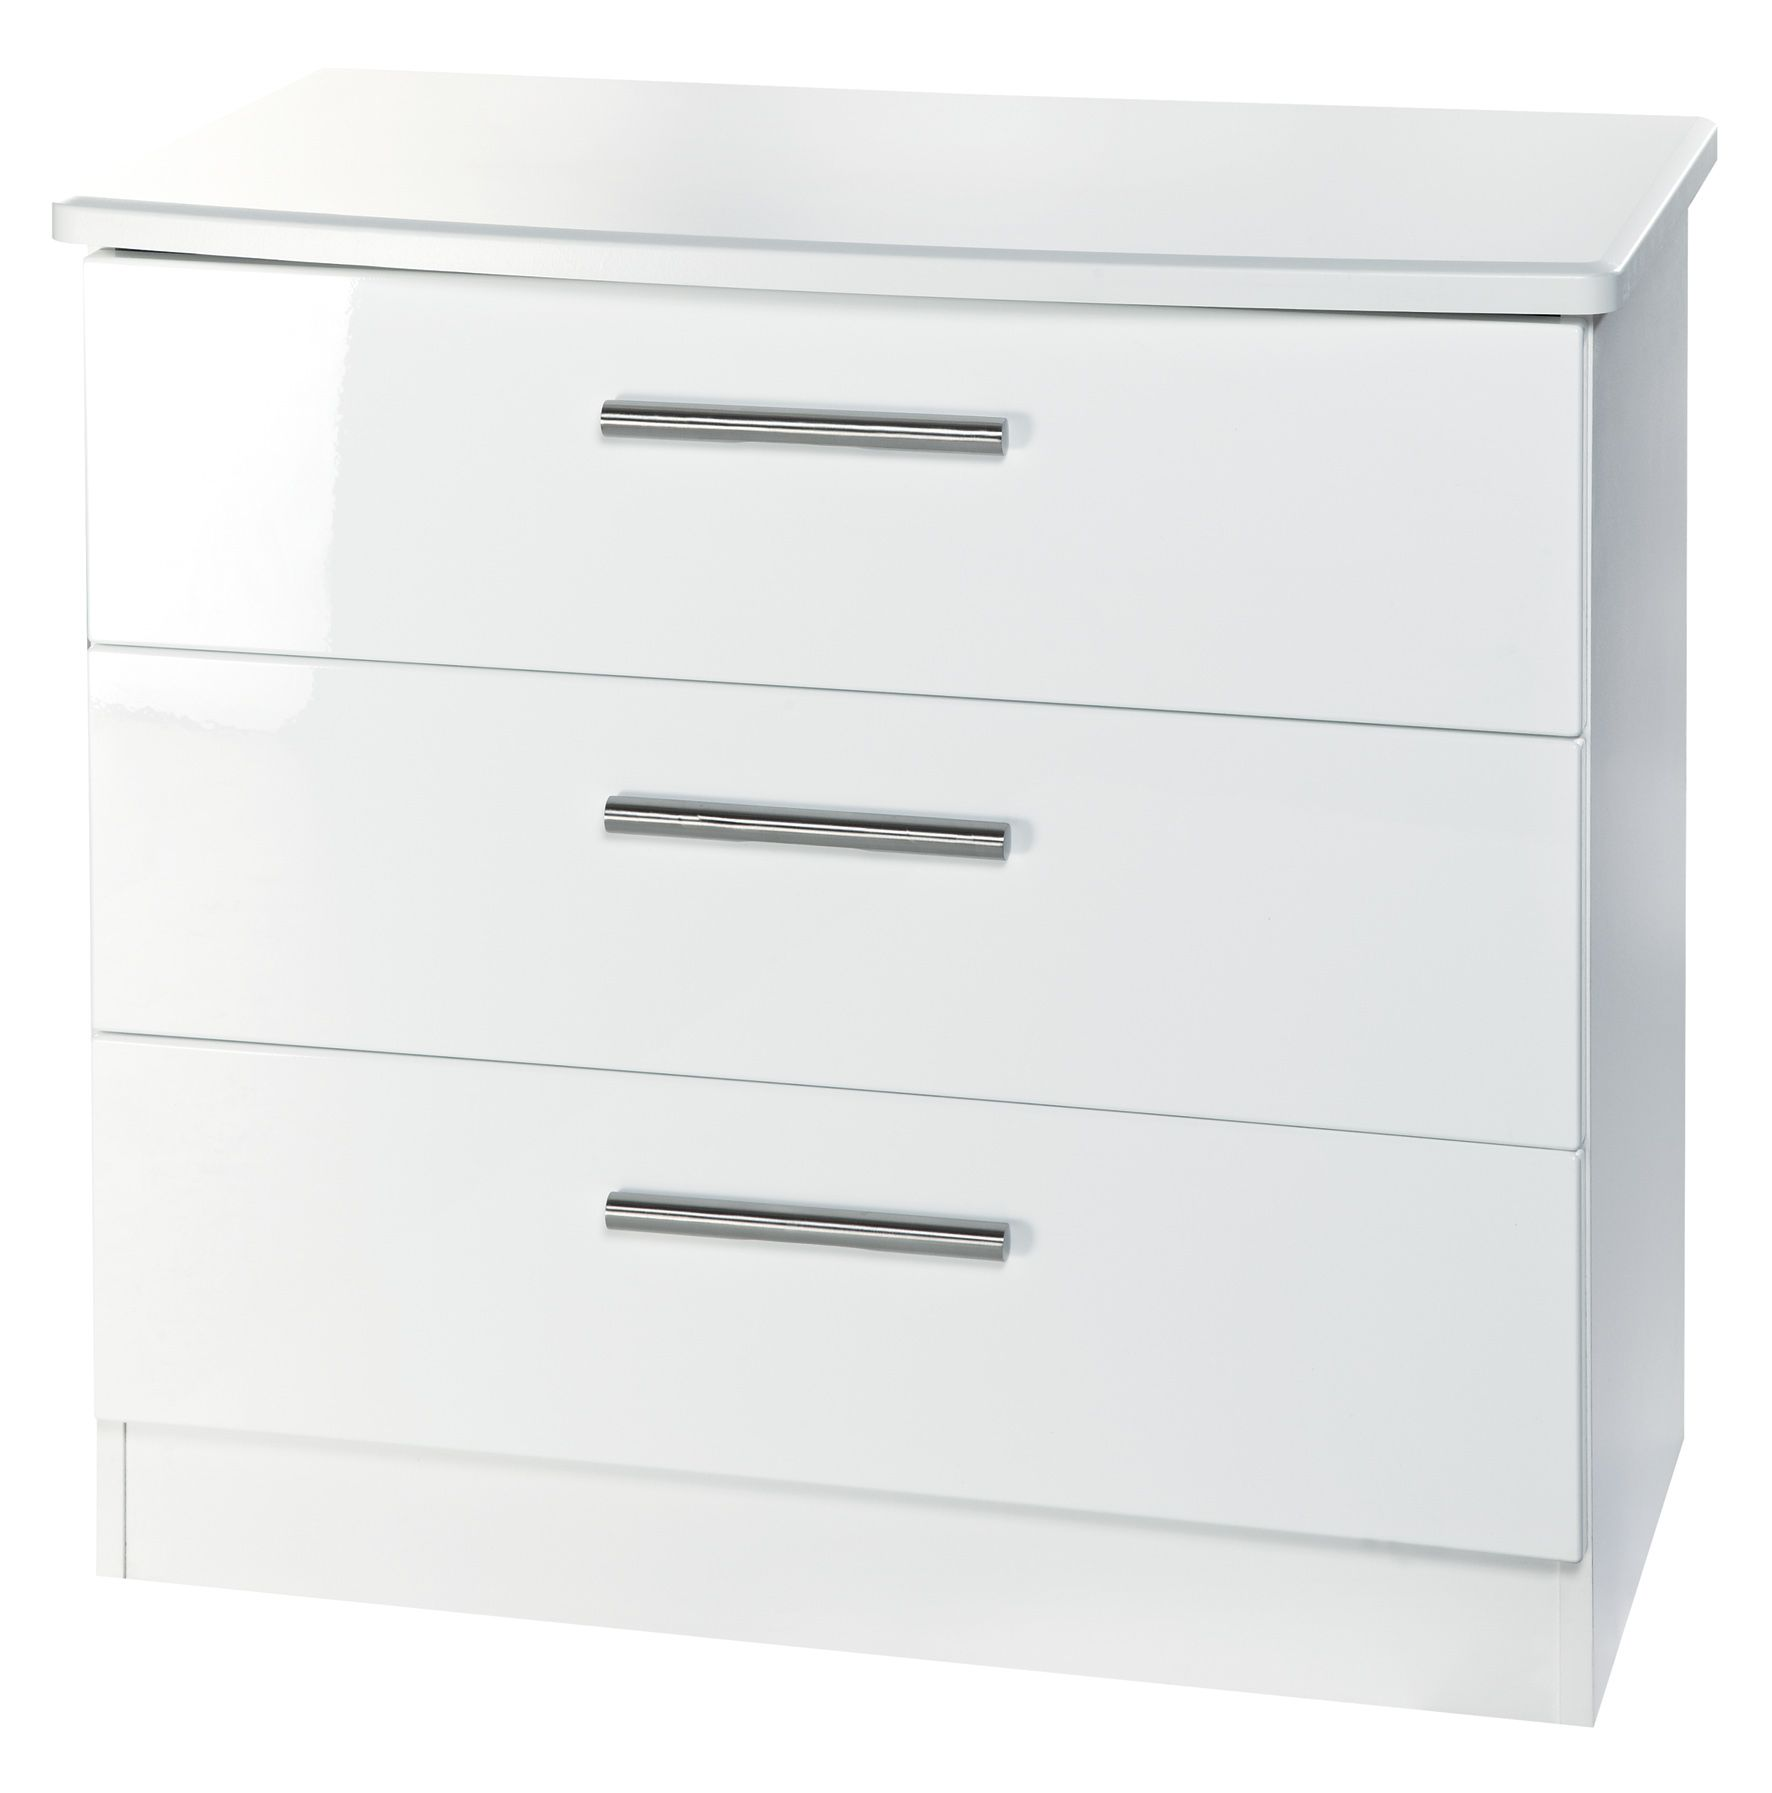 Buy Knightsbridge White High Gloss Chest Of Drawer At Best Stockist Sale Price Shop For Knightsbridge  Drawer Chest From Cfs Store Or Online Free